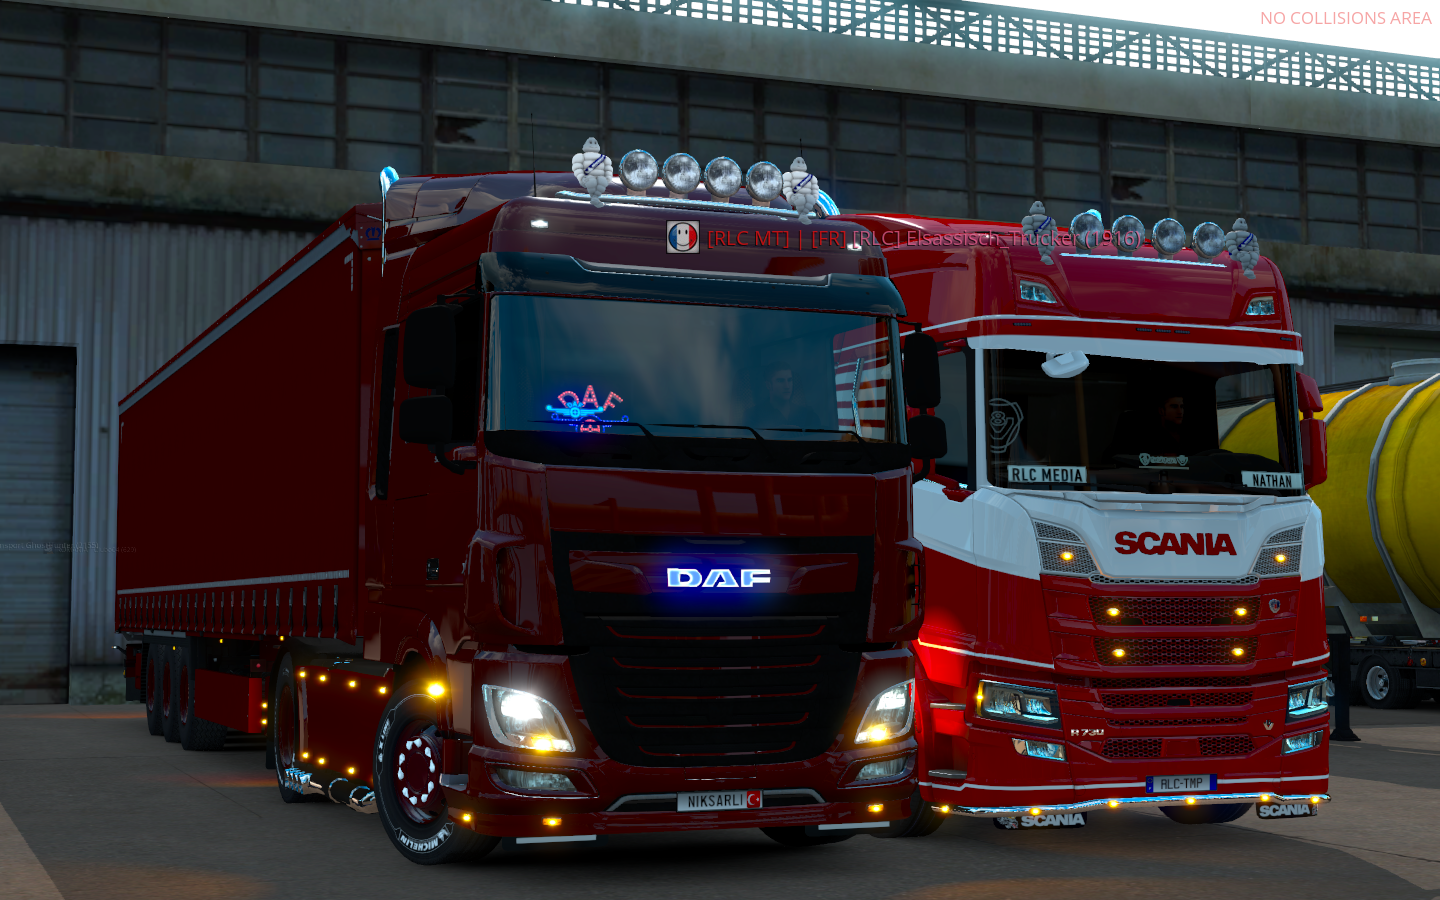 ets2_20190415_234251_00.png